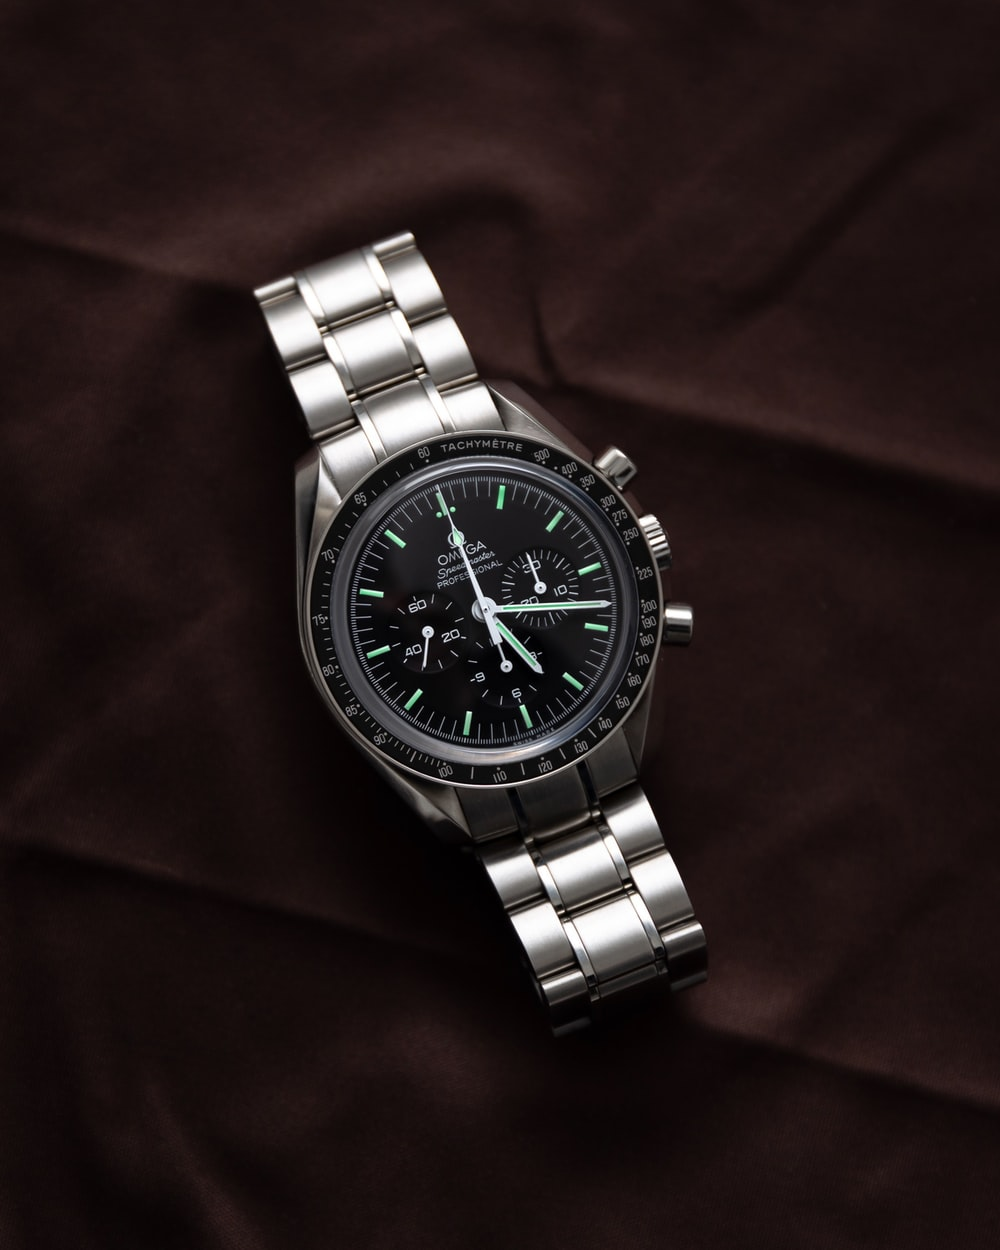 shallow focus photo of round silver-colored chronograph watch with link bracelet